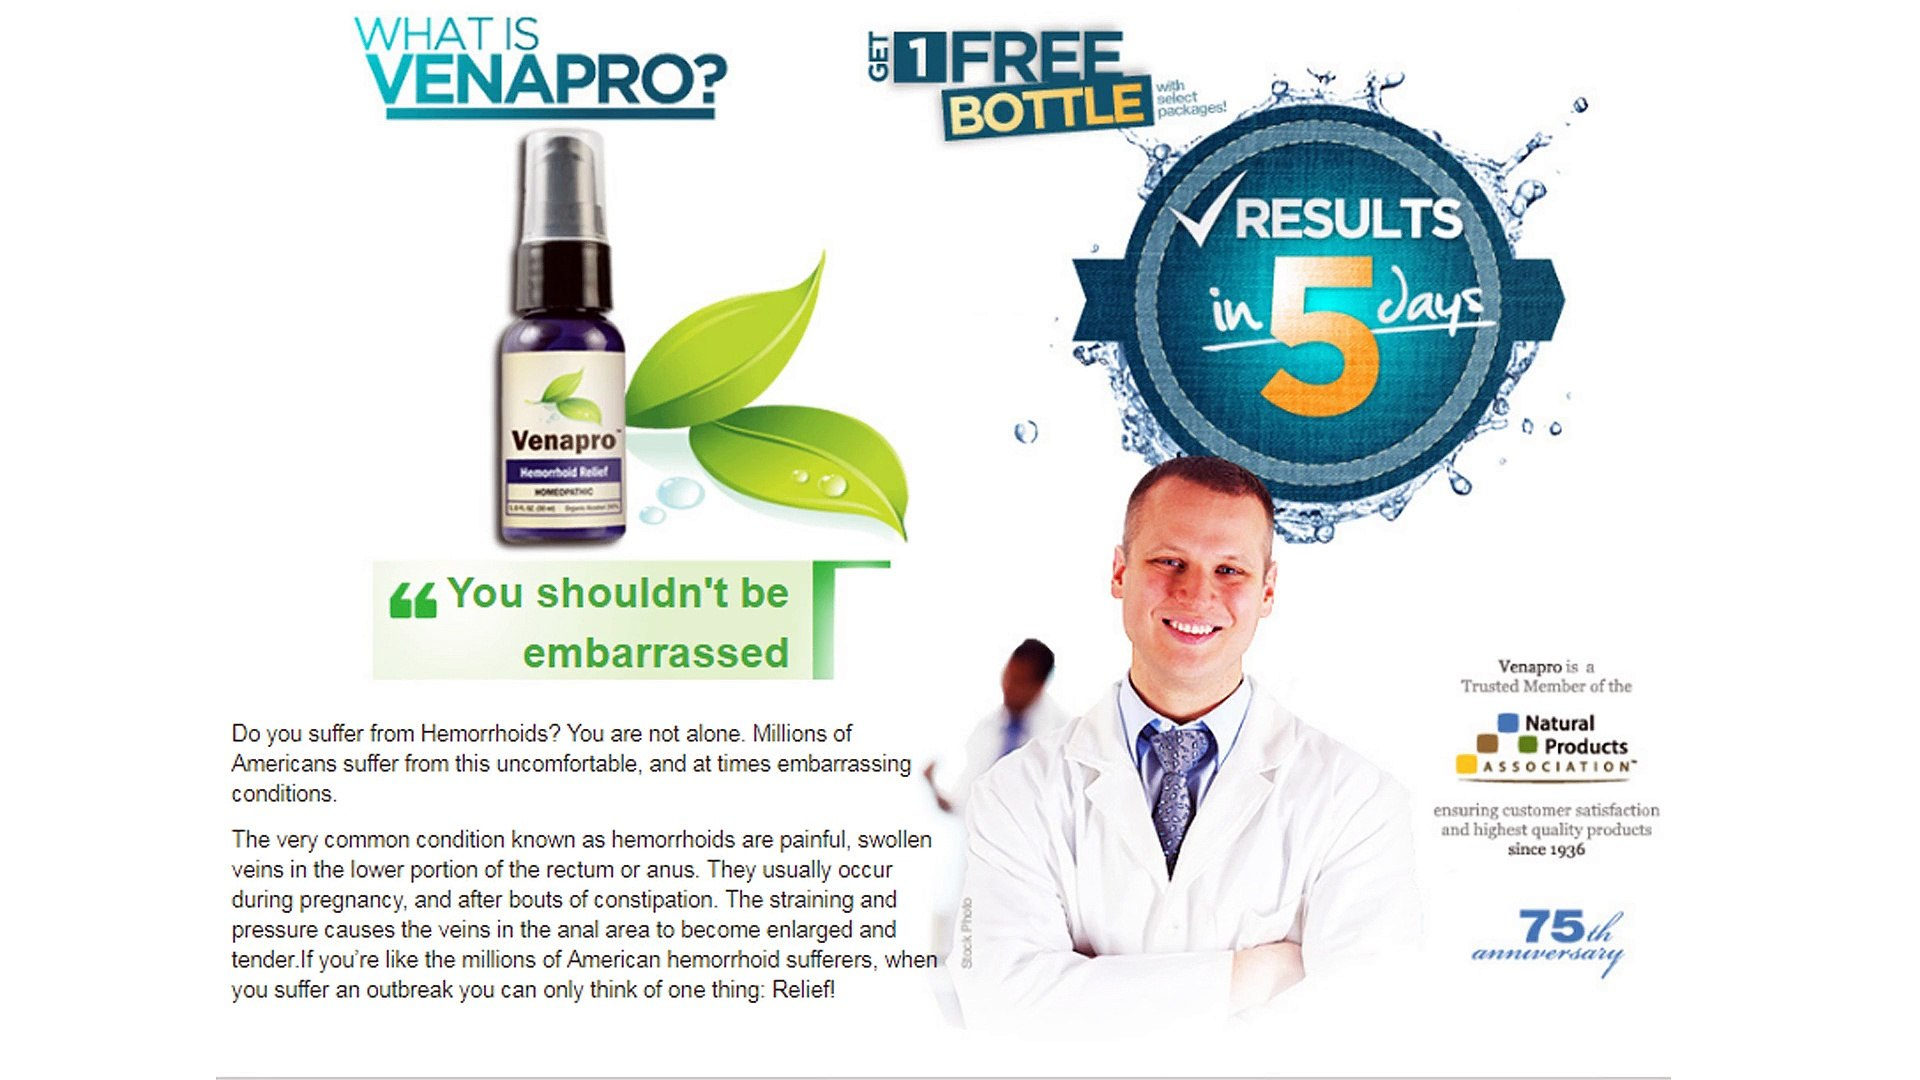 Venapro Homeopathic Hemorrhoid Buy Venapro Buy Venapro For Fast